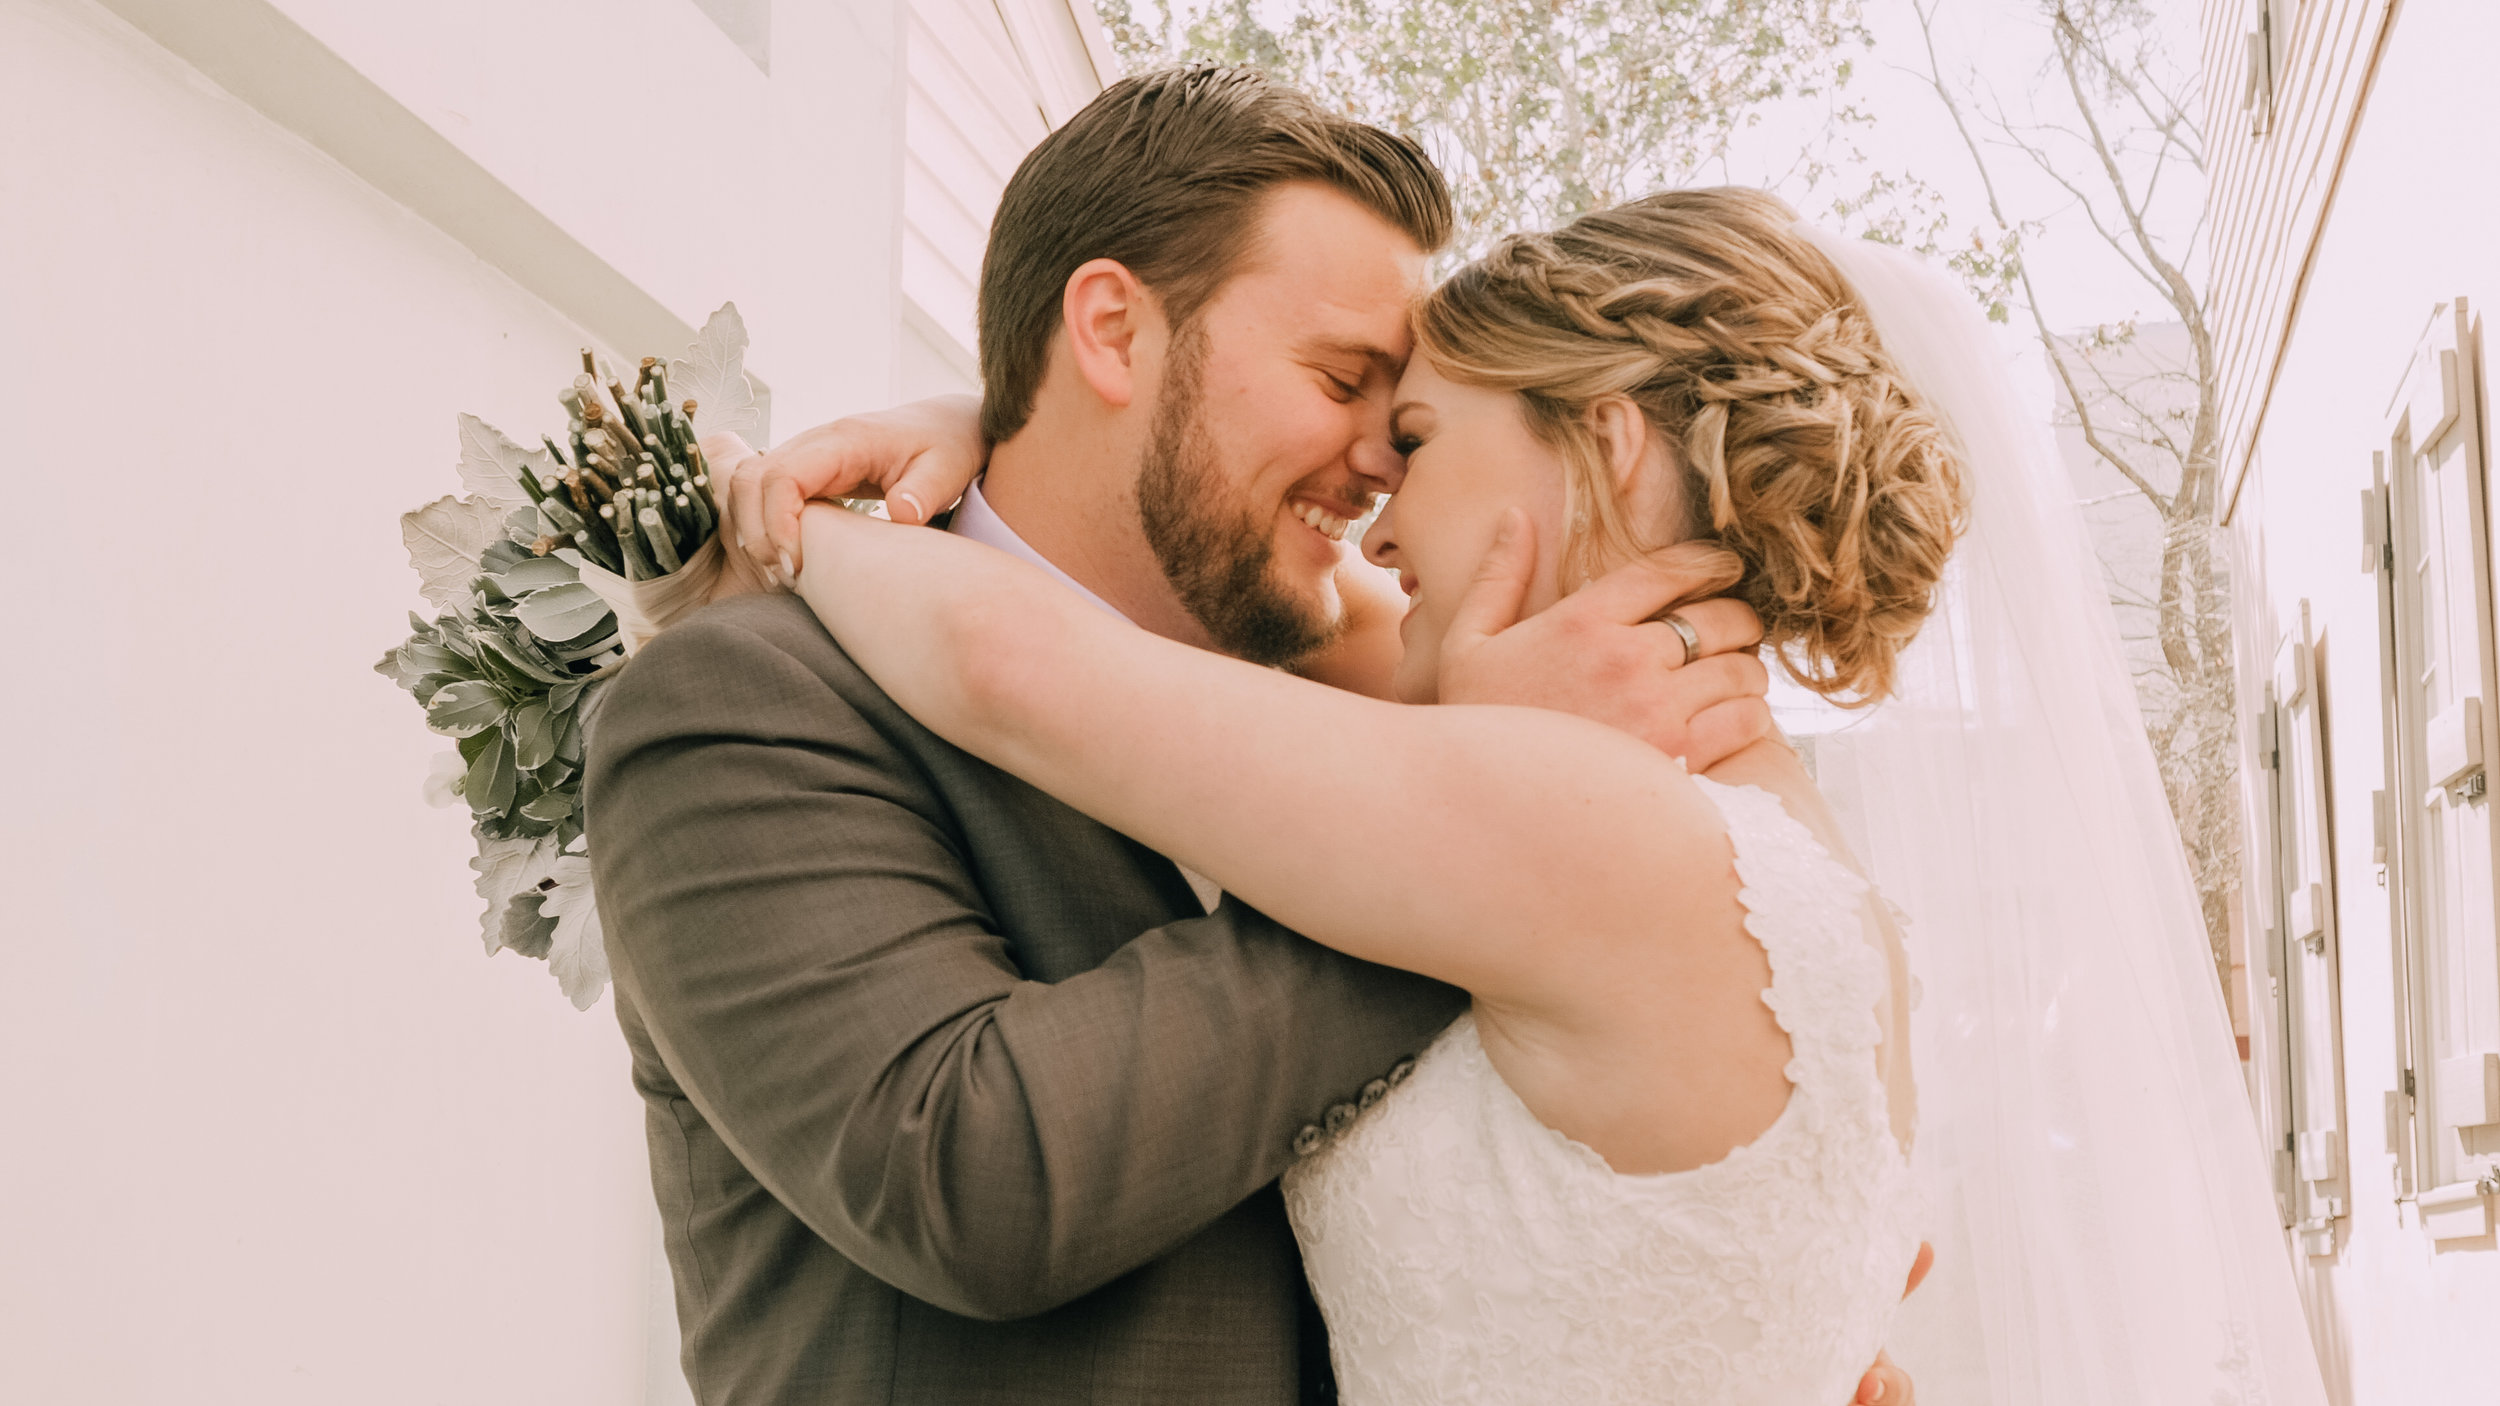 JULIAN + LEAH - The wedding of Julian + Leah, captured at The White Room in St. Augustine, FL.